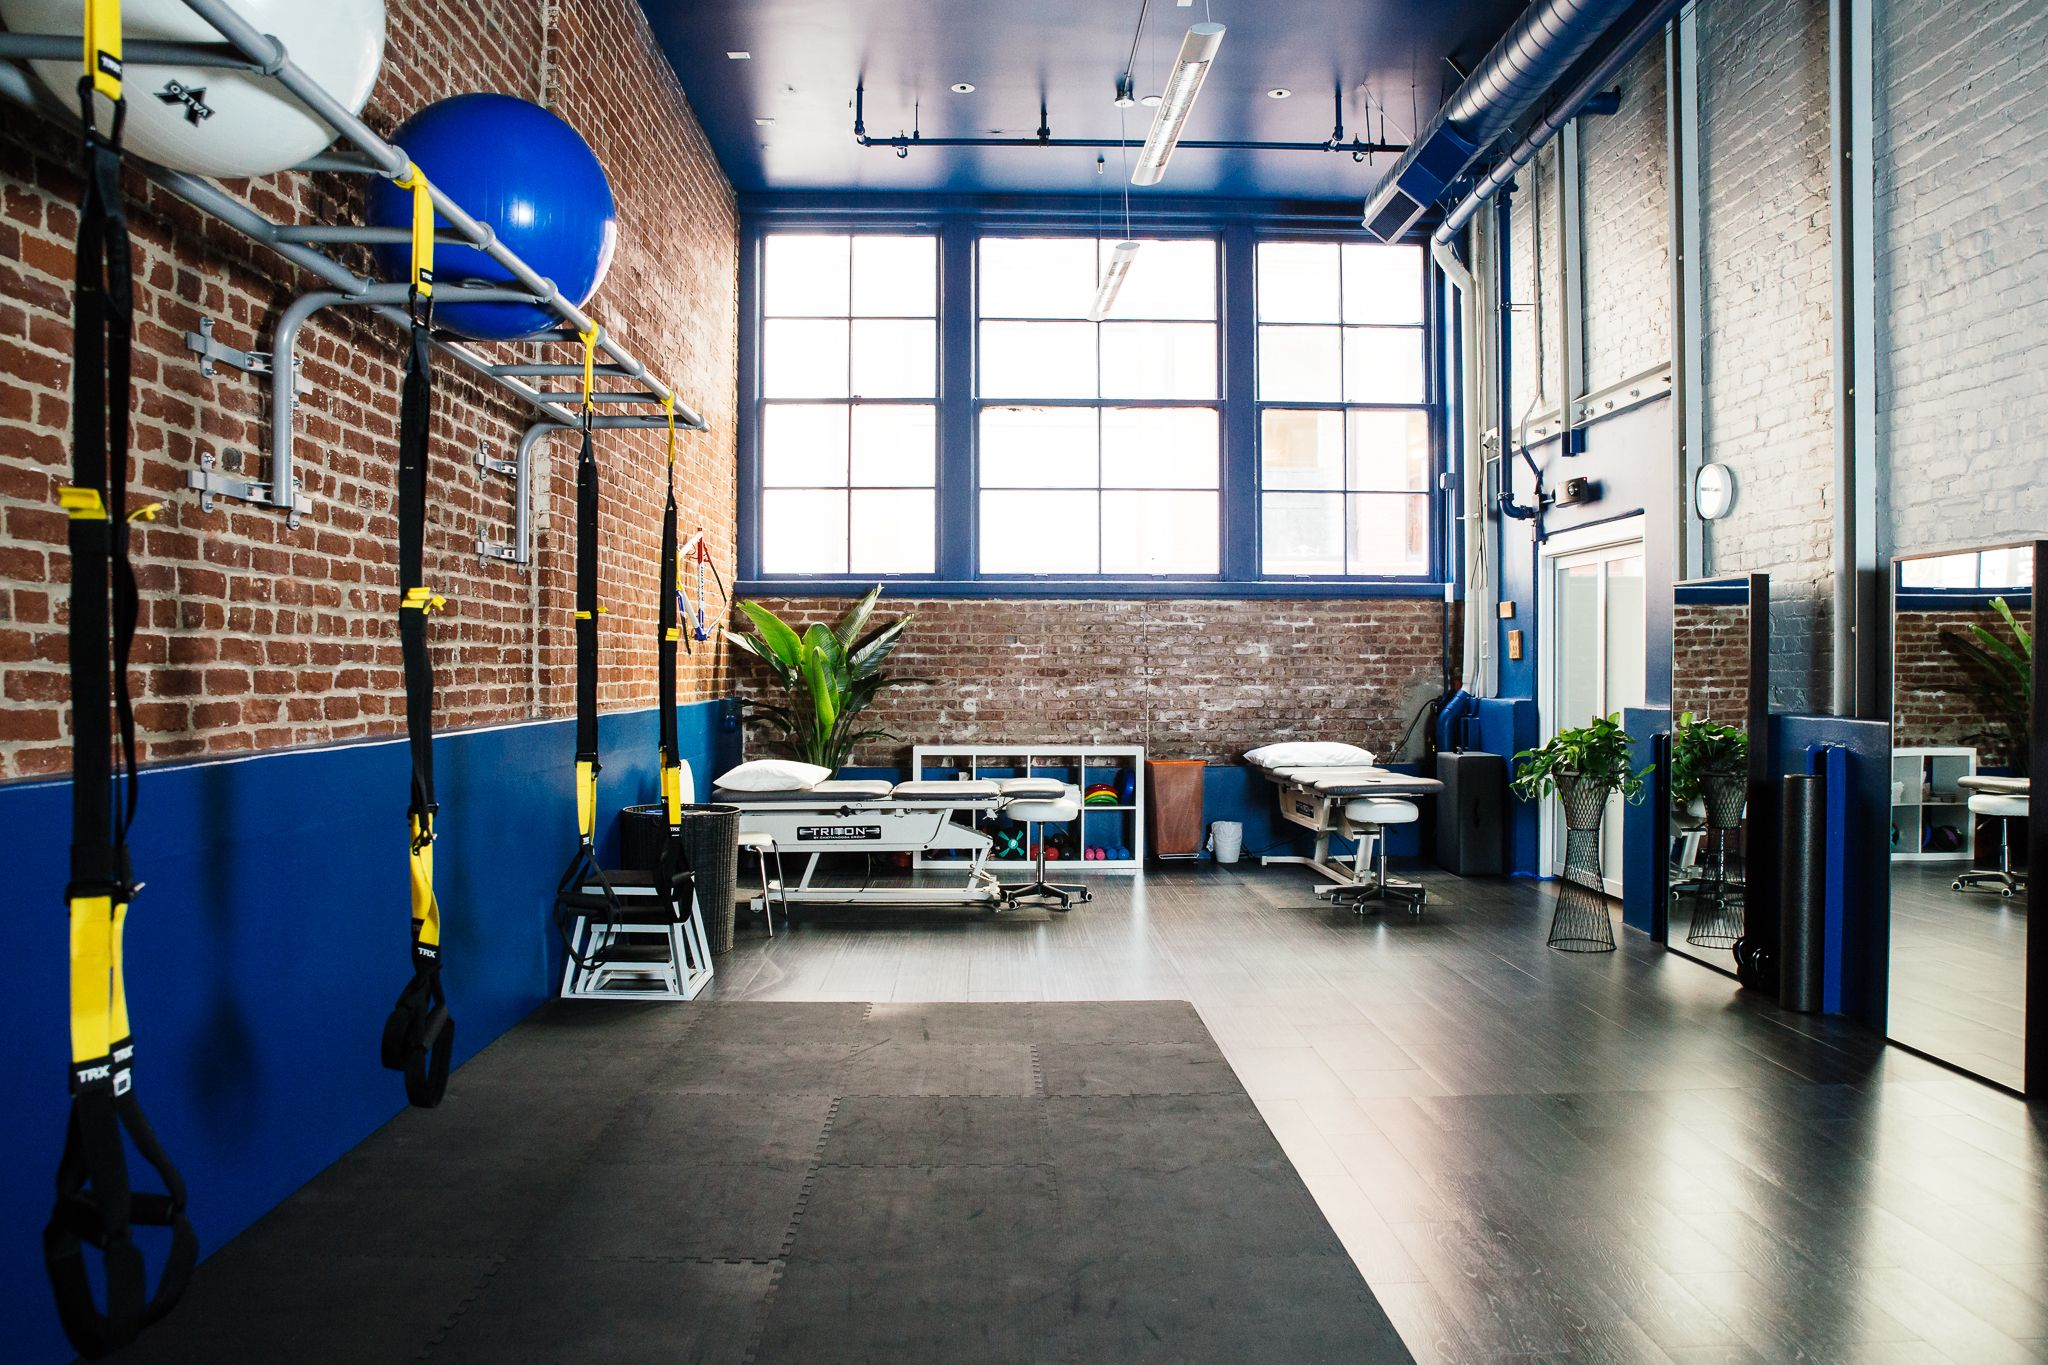 Small High Impact Decor Ideas: Physical Therapy €� Pilates €� TRX